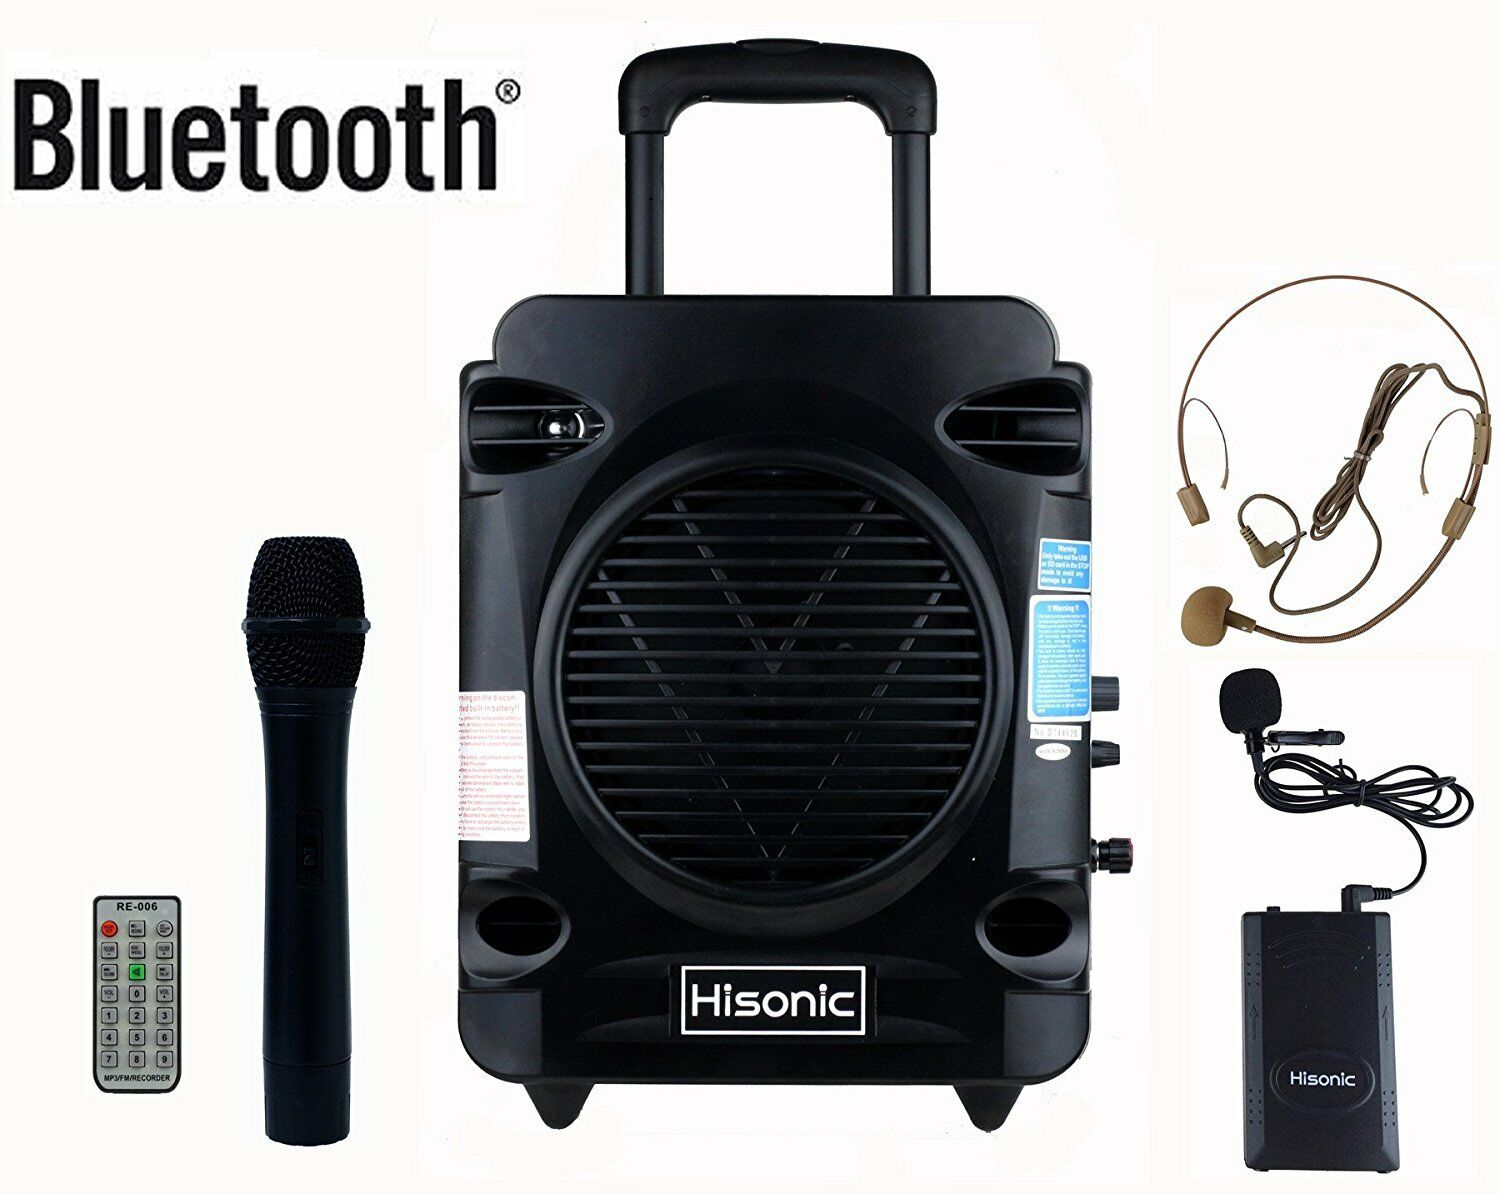 Hisonic HS700 Rechargeable Portable PA System with Dual Wireless Microphone